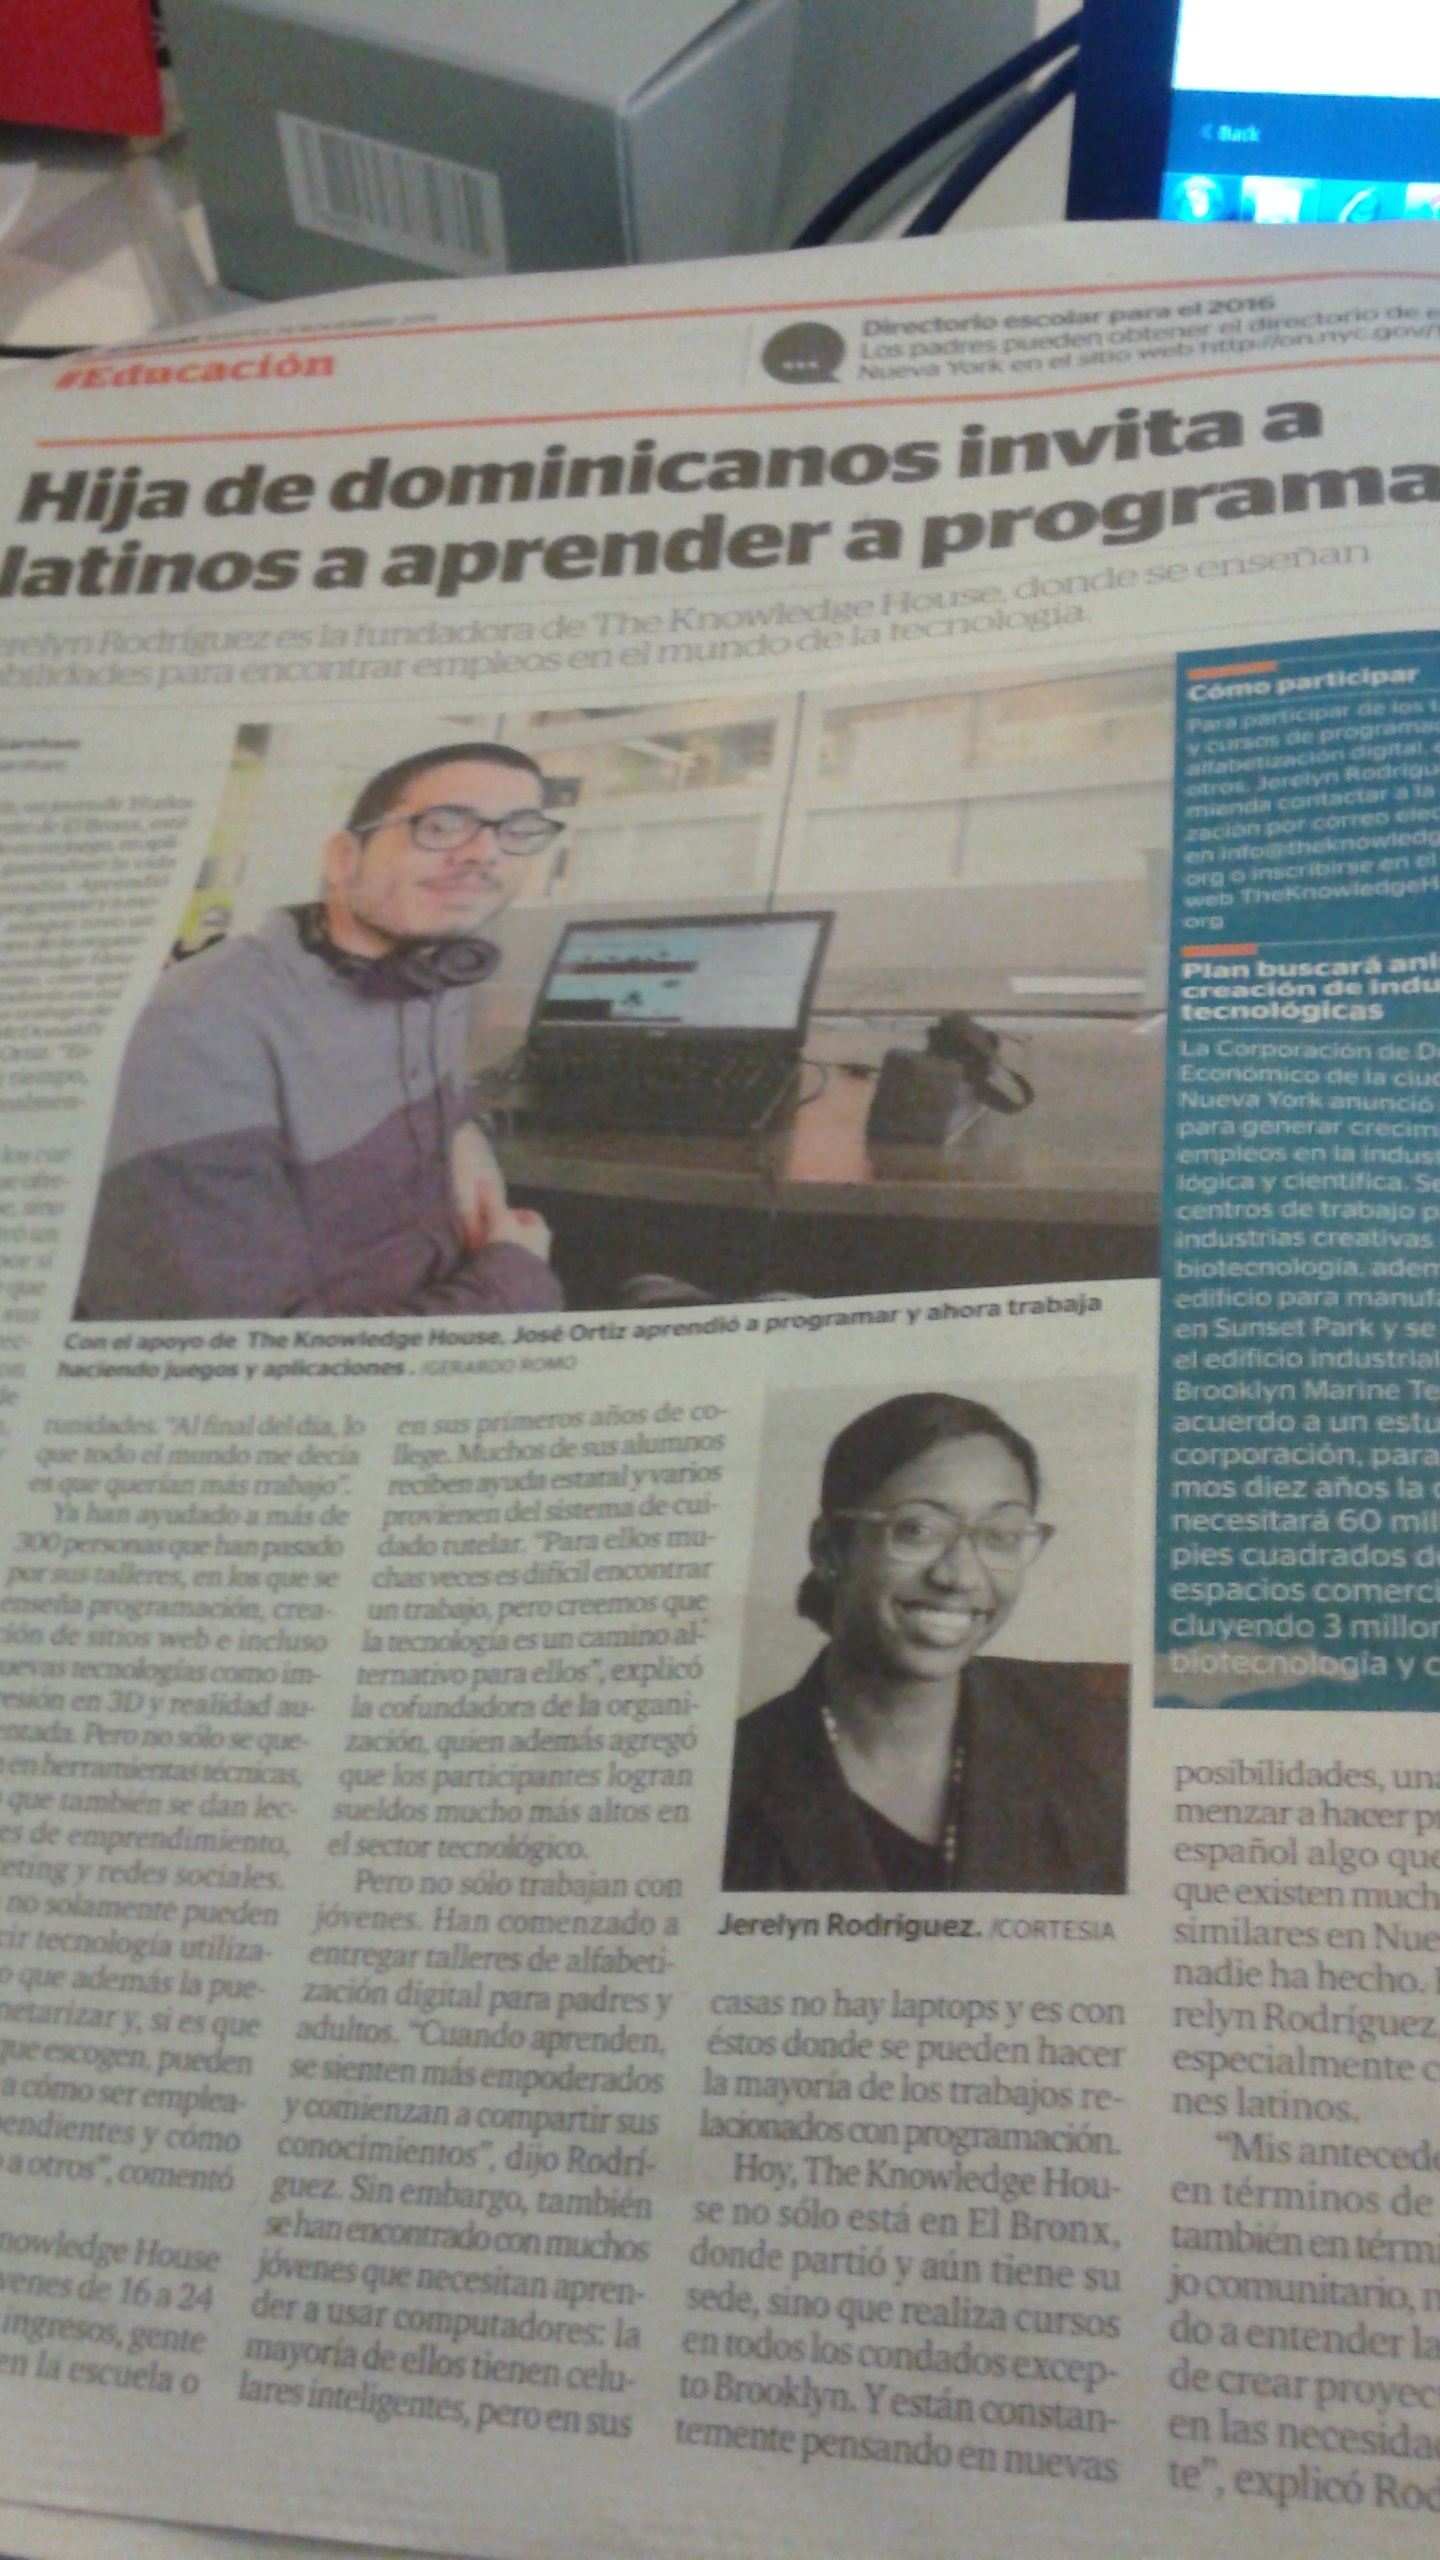 Annual Innovation Series/TKH in El Diario